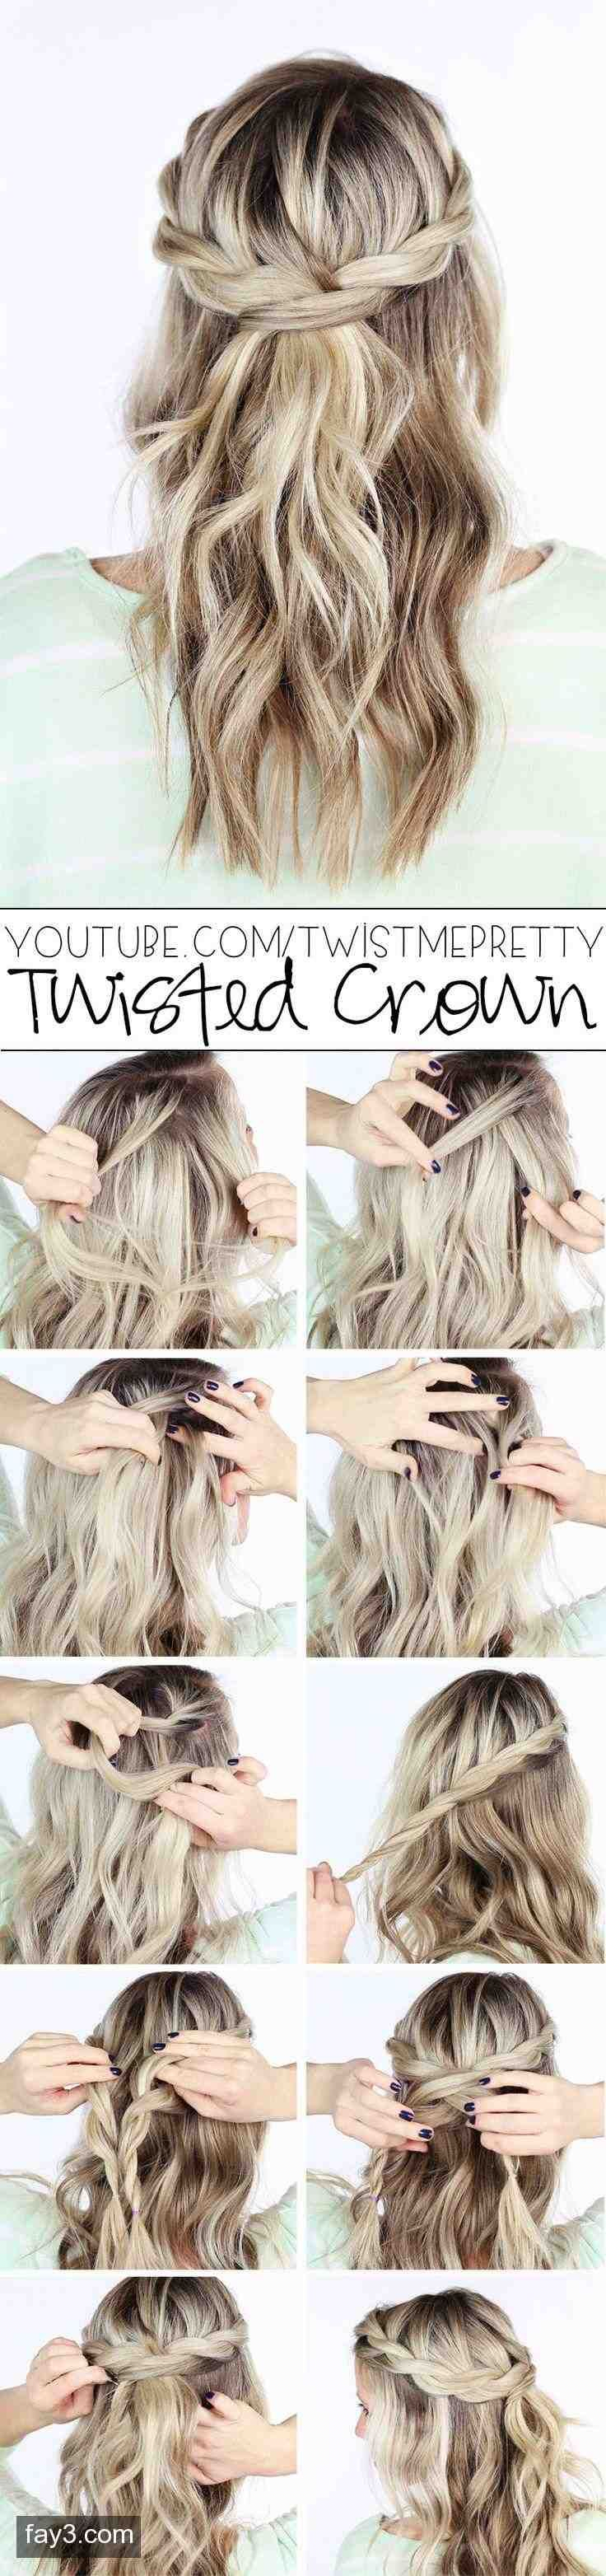 1200 best Hairstyles & Makeup تسريحات ومكياج images on Pinterest